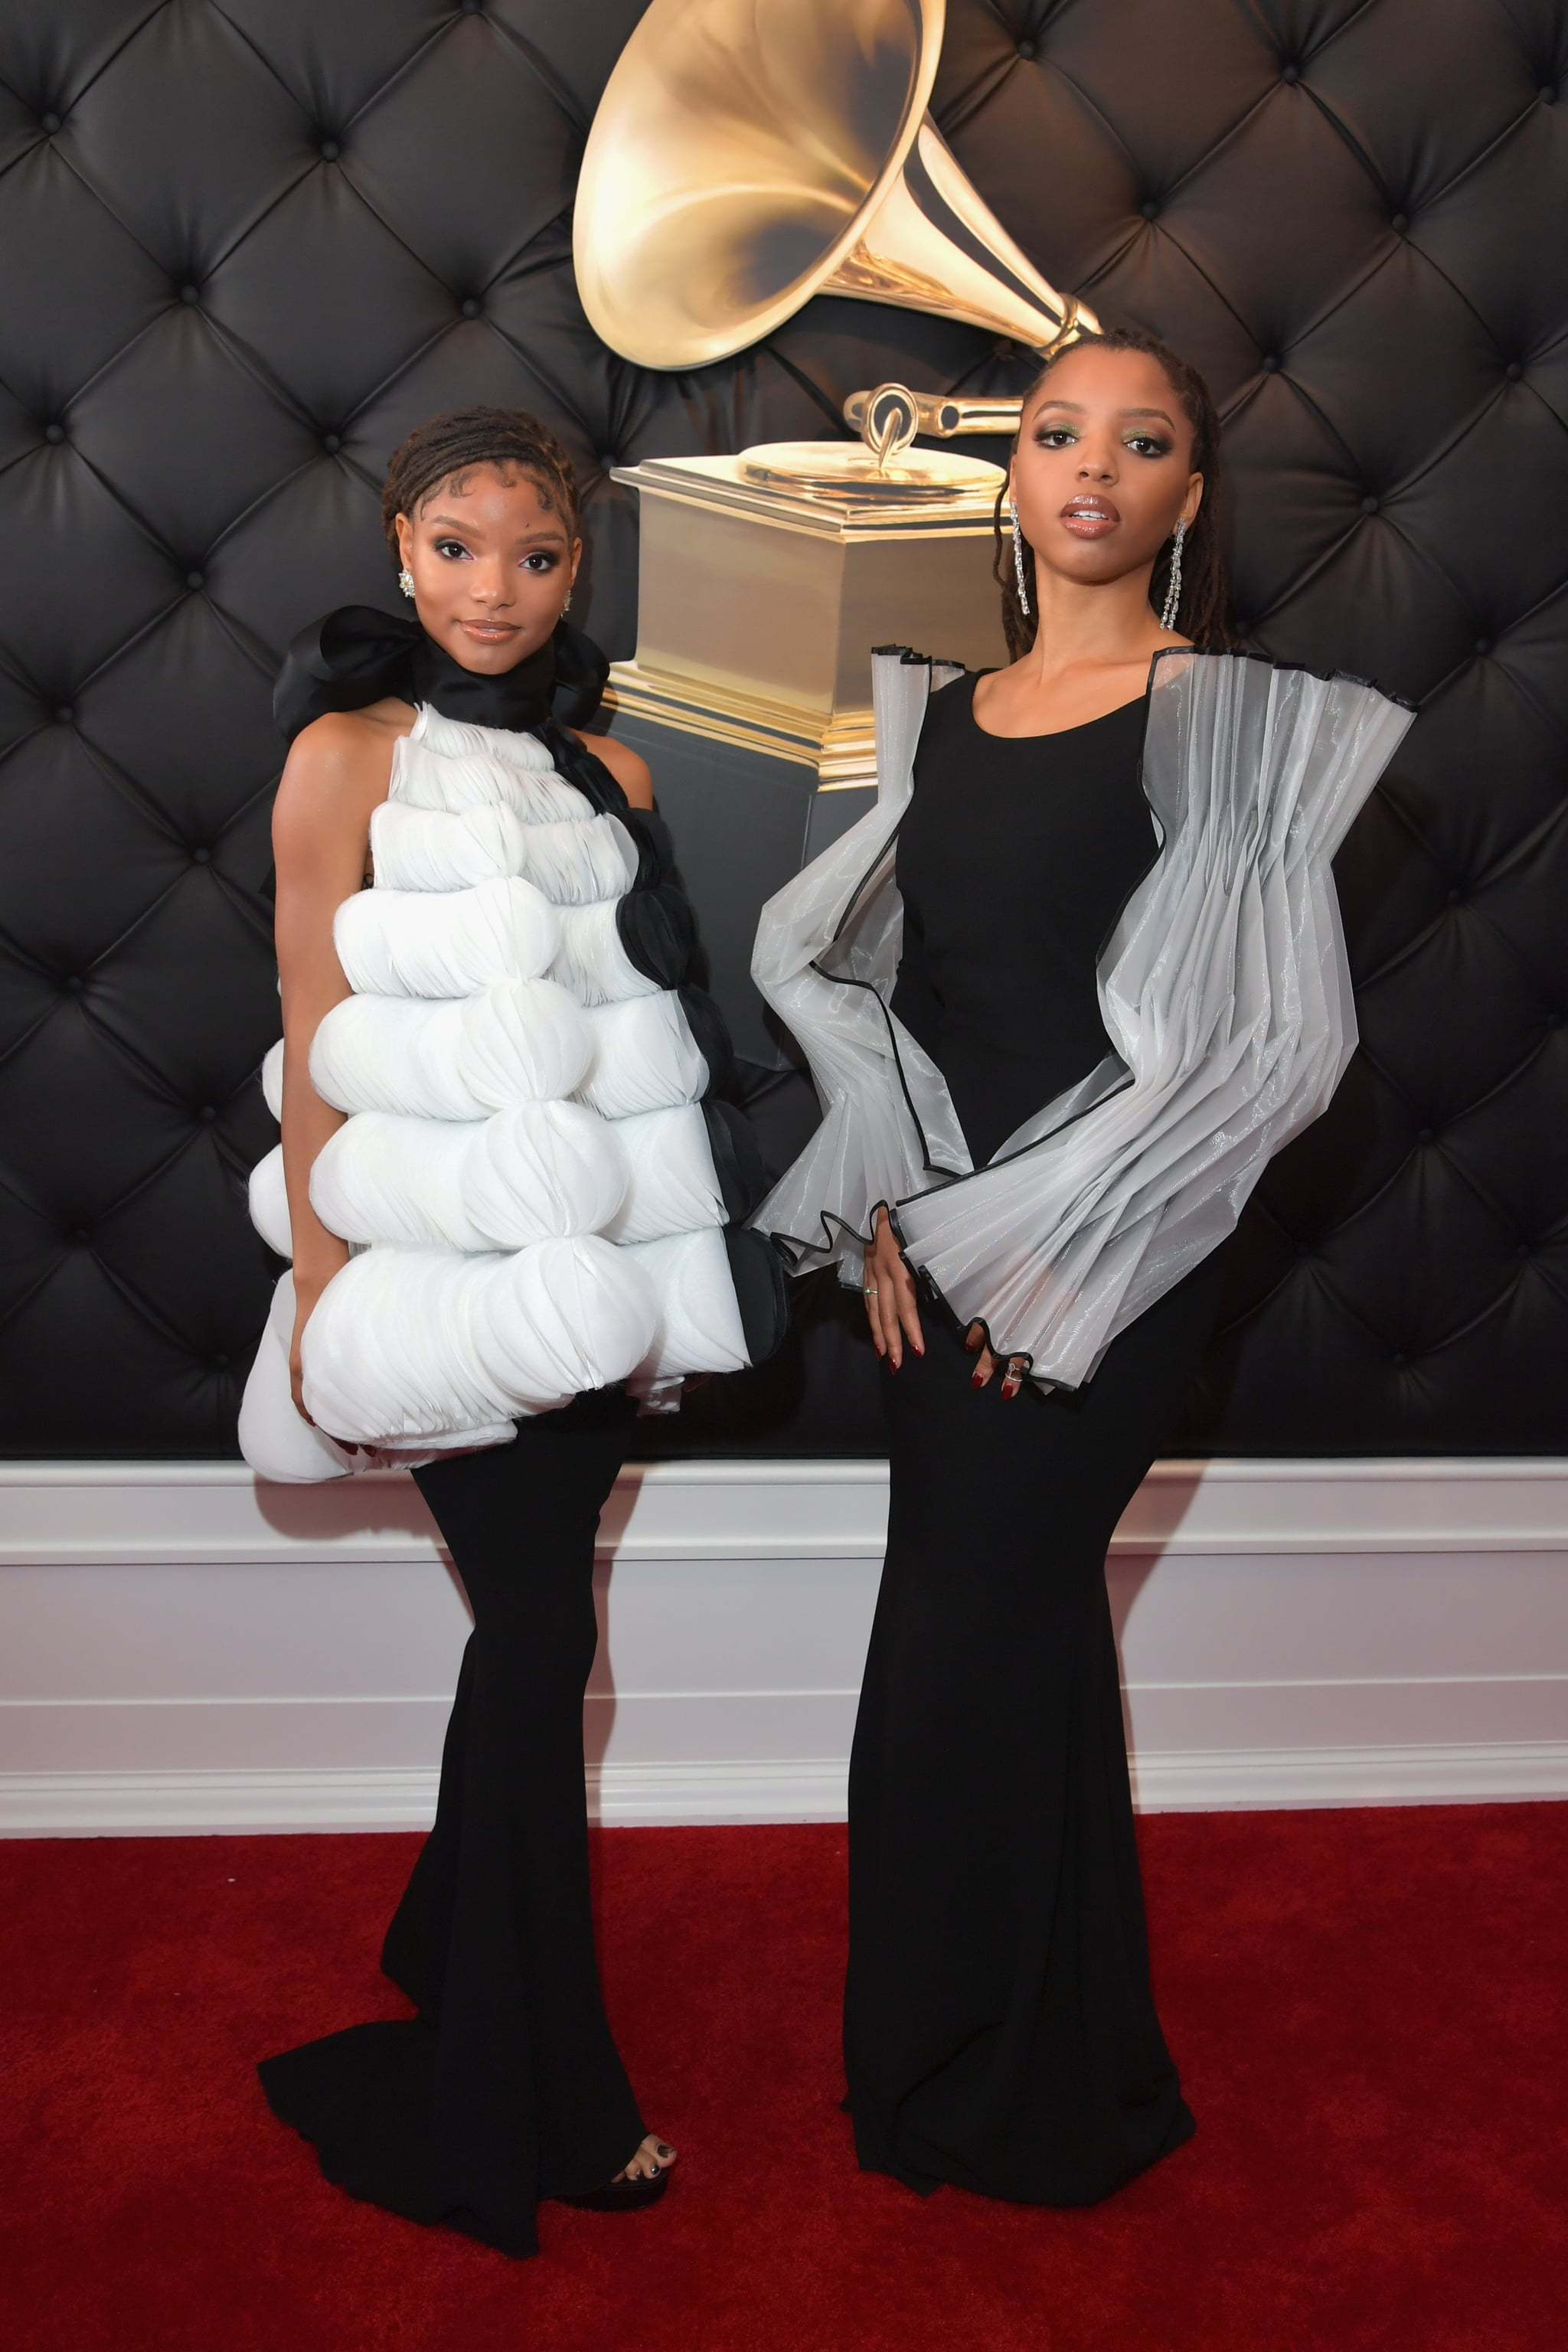 LOS ANGELES, CA - FEBRUARY 10:  Halle Bailey (L) and Chloe Bailey of Chloe X Halle attend the 61st Annual GRAMMY Awards at Staples Center on February 10, 2019 in Los Angeles, California.  (Photo by Lester Cohen/Getty Images for The Recording Academy)